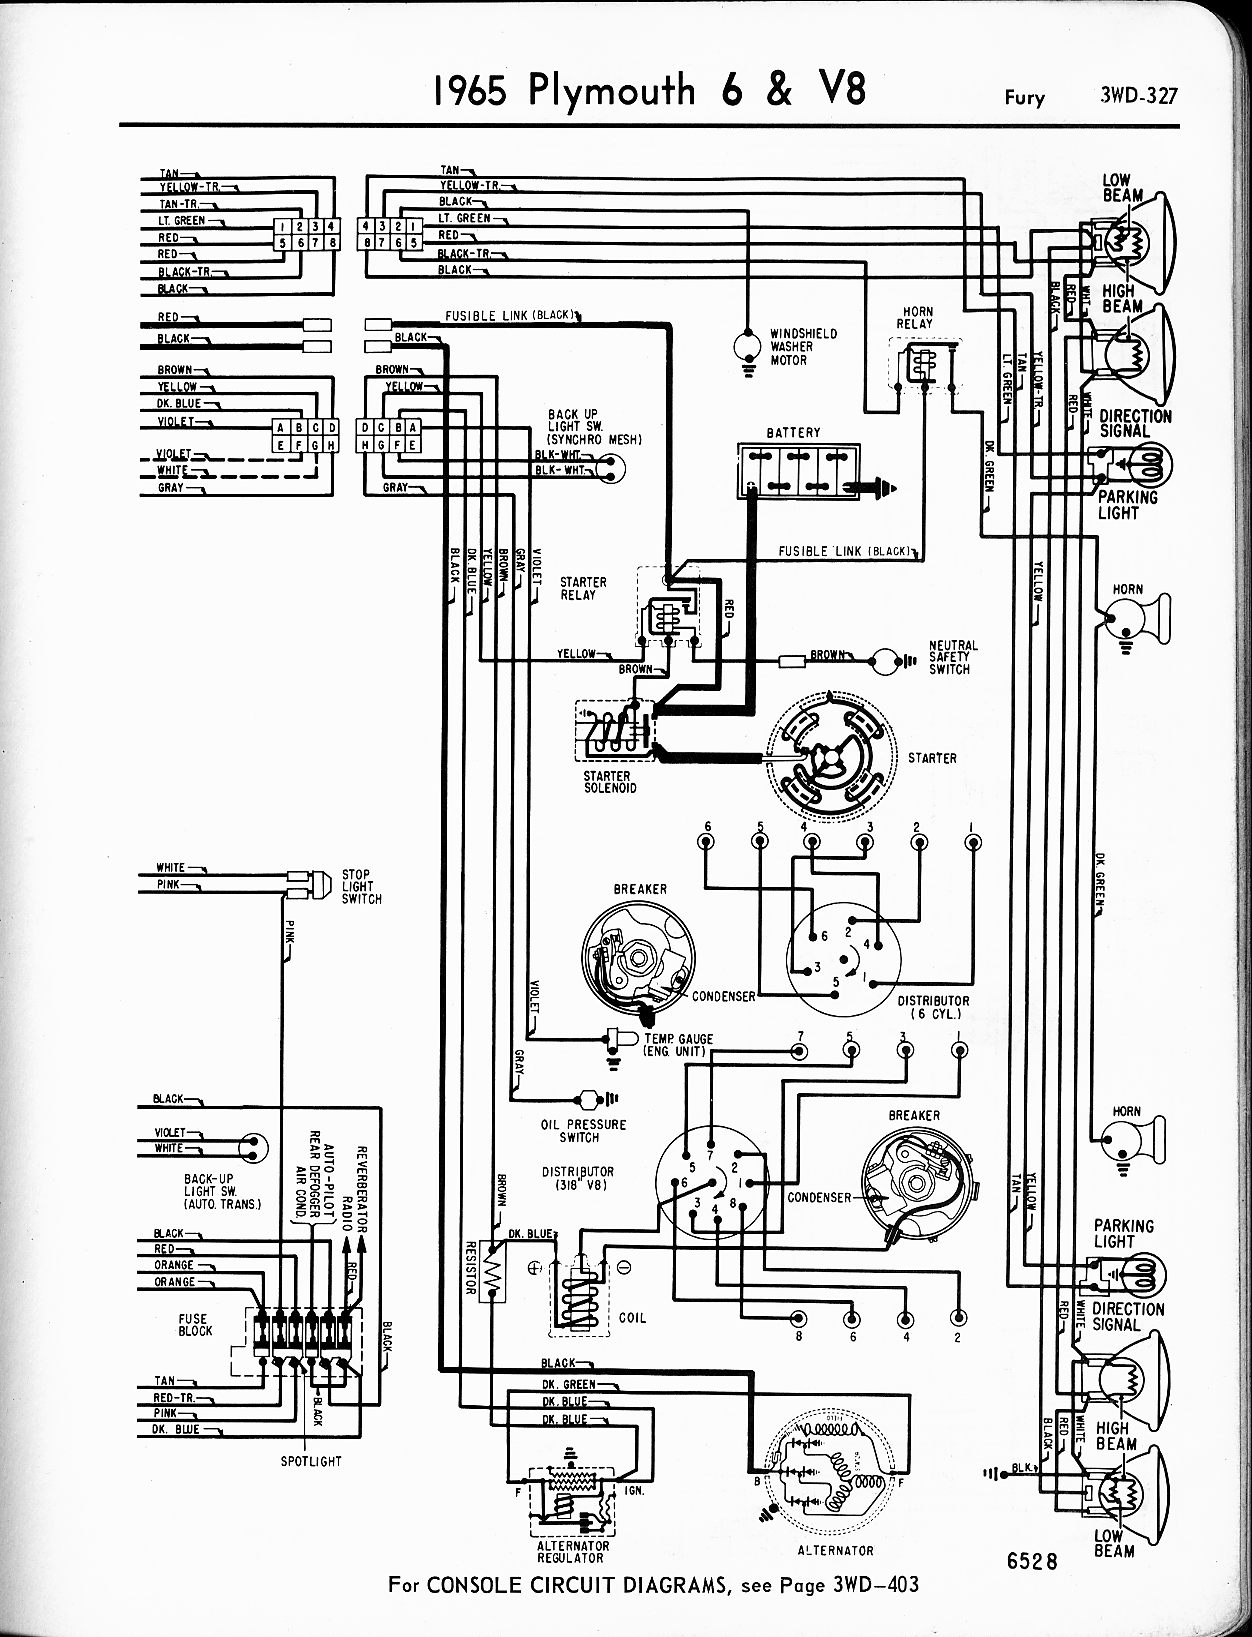 1965 Plymouth Valiant Wiring Diagram Opinions About Wiring Diagram \u2022  70 Valiant 68 Valiant Wiring Diagram